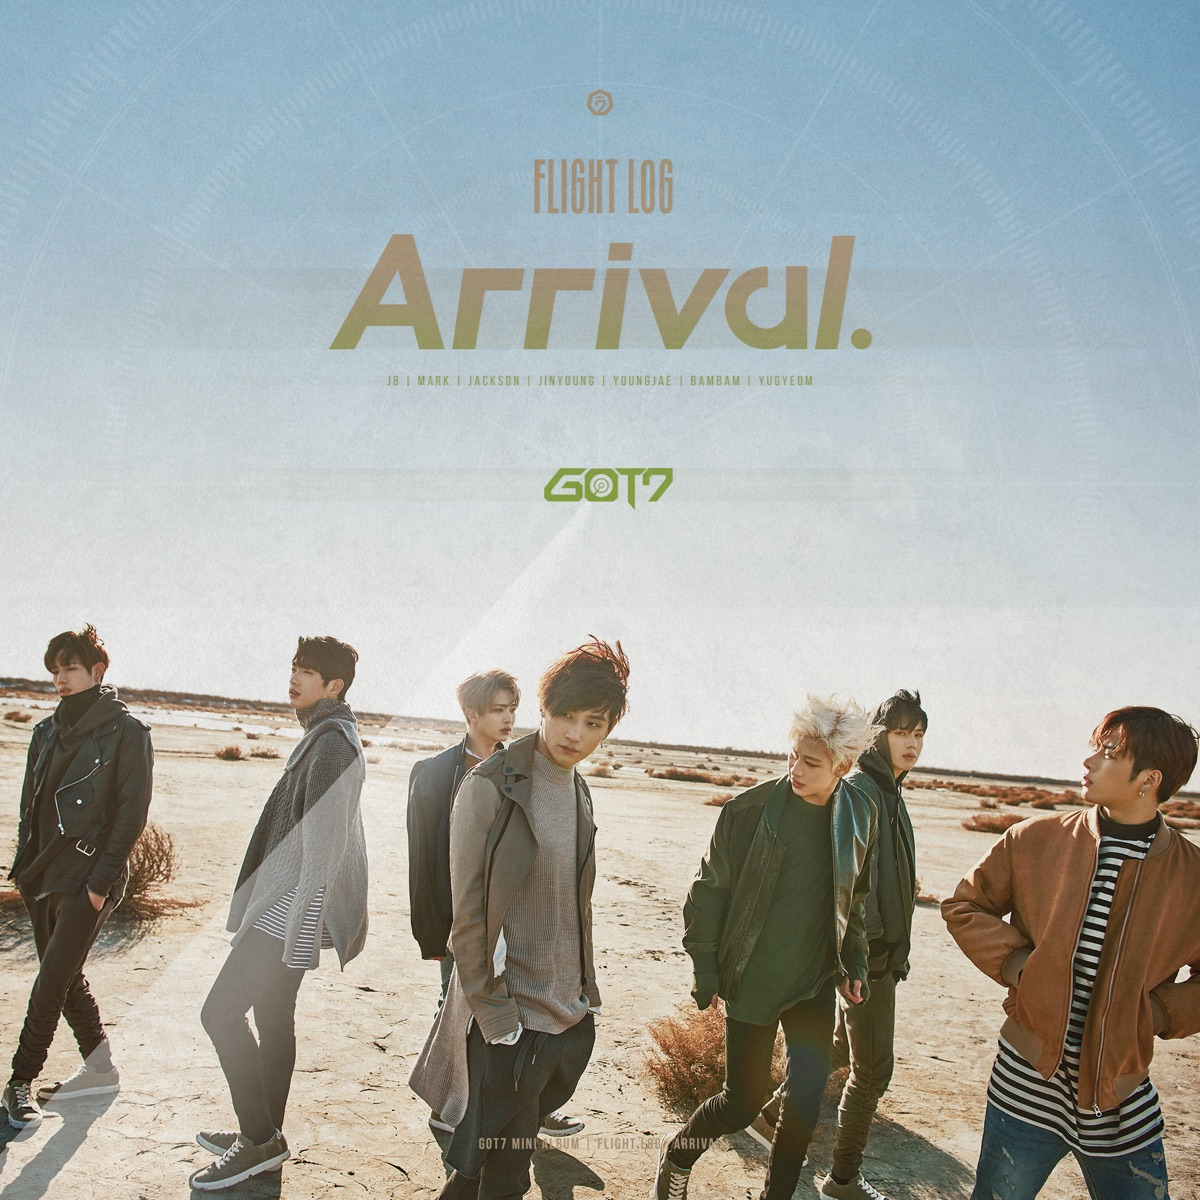 FLIGHT LOG ARRIVAL GOT7 CD cover